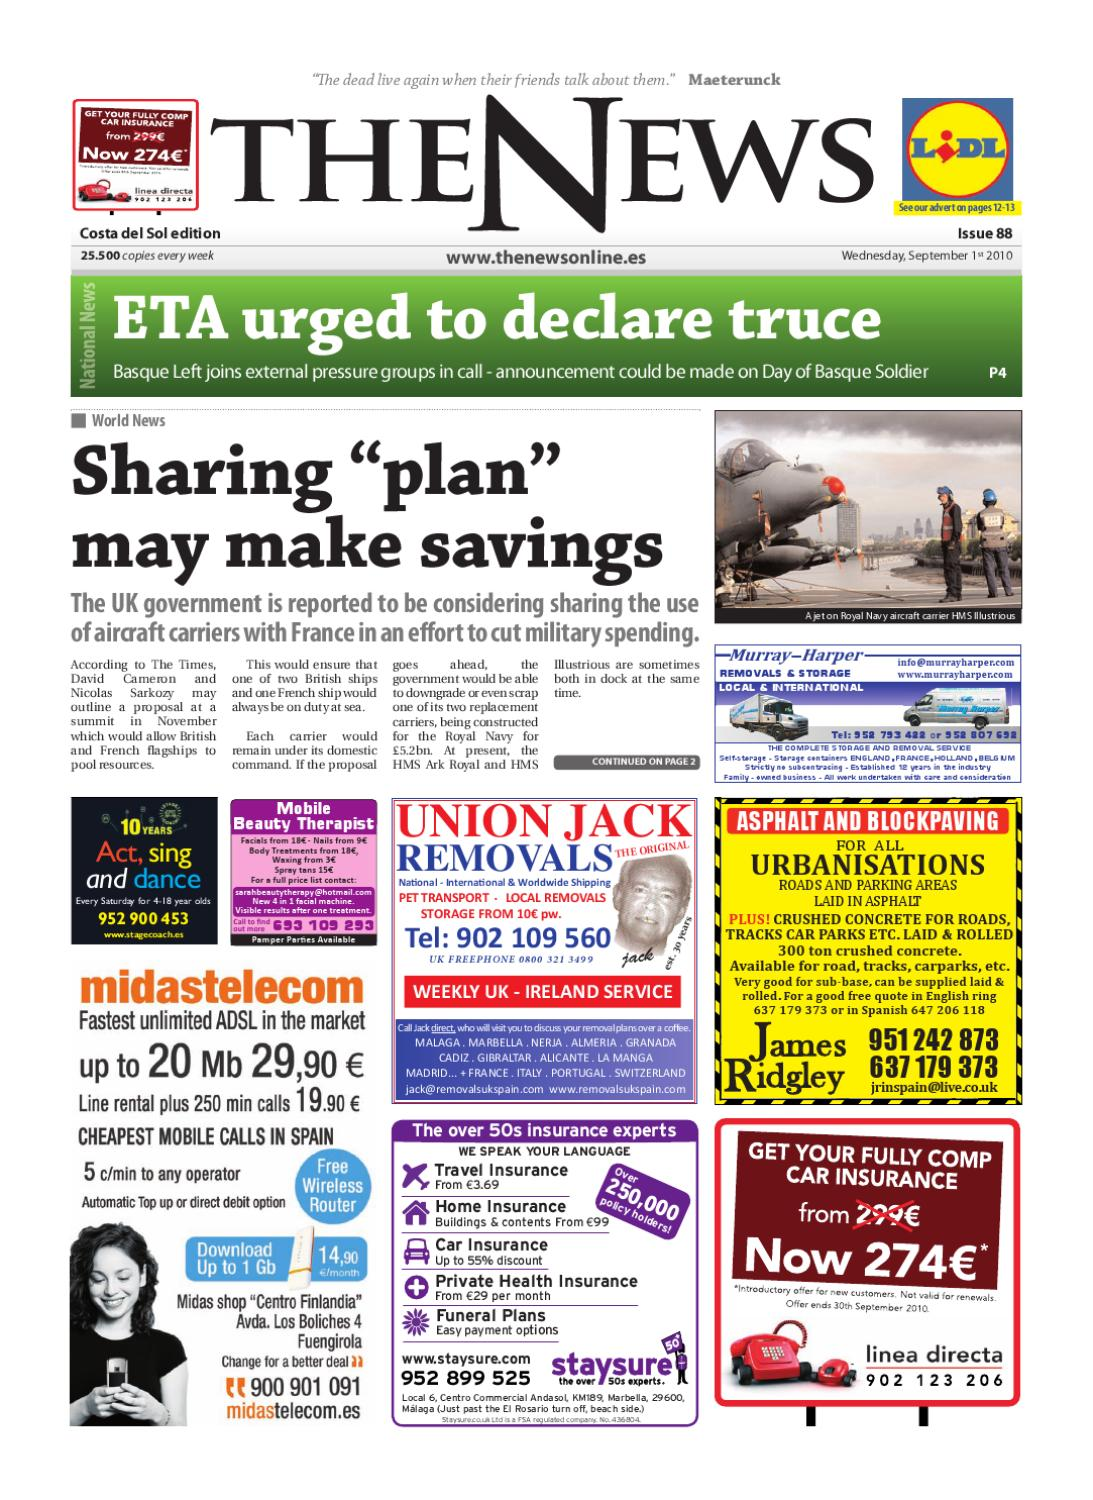 The News Newspaper Issue 088 Sept 1st 2010 By The News